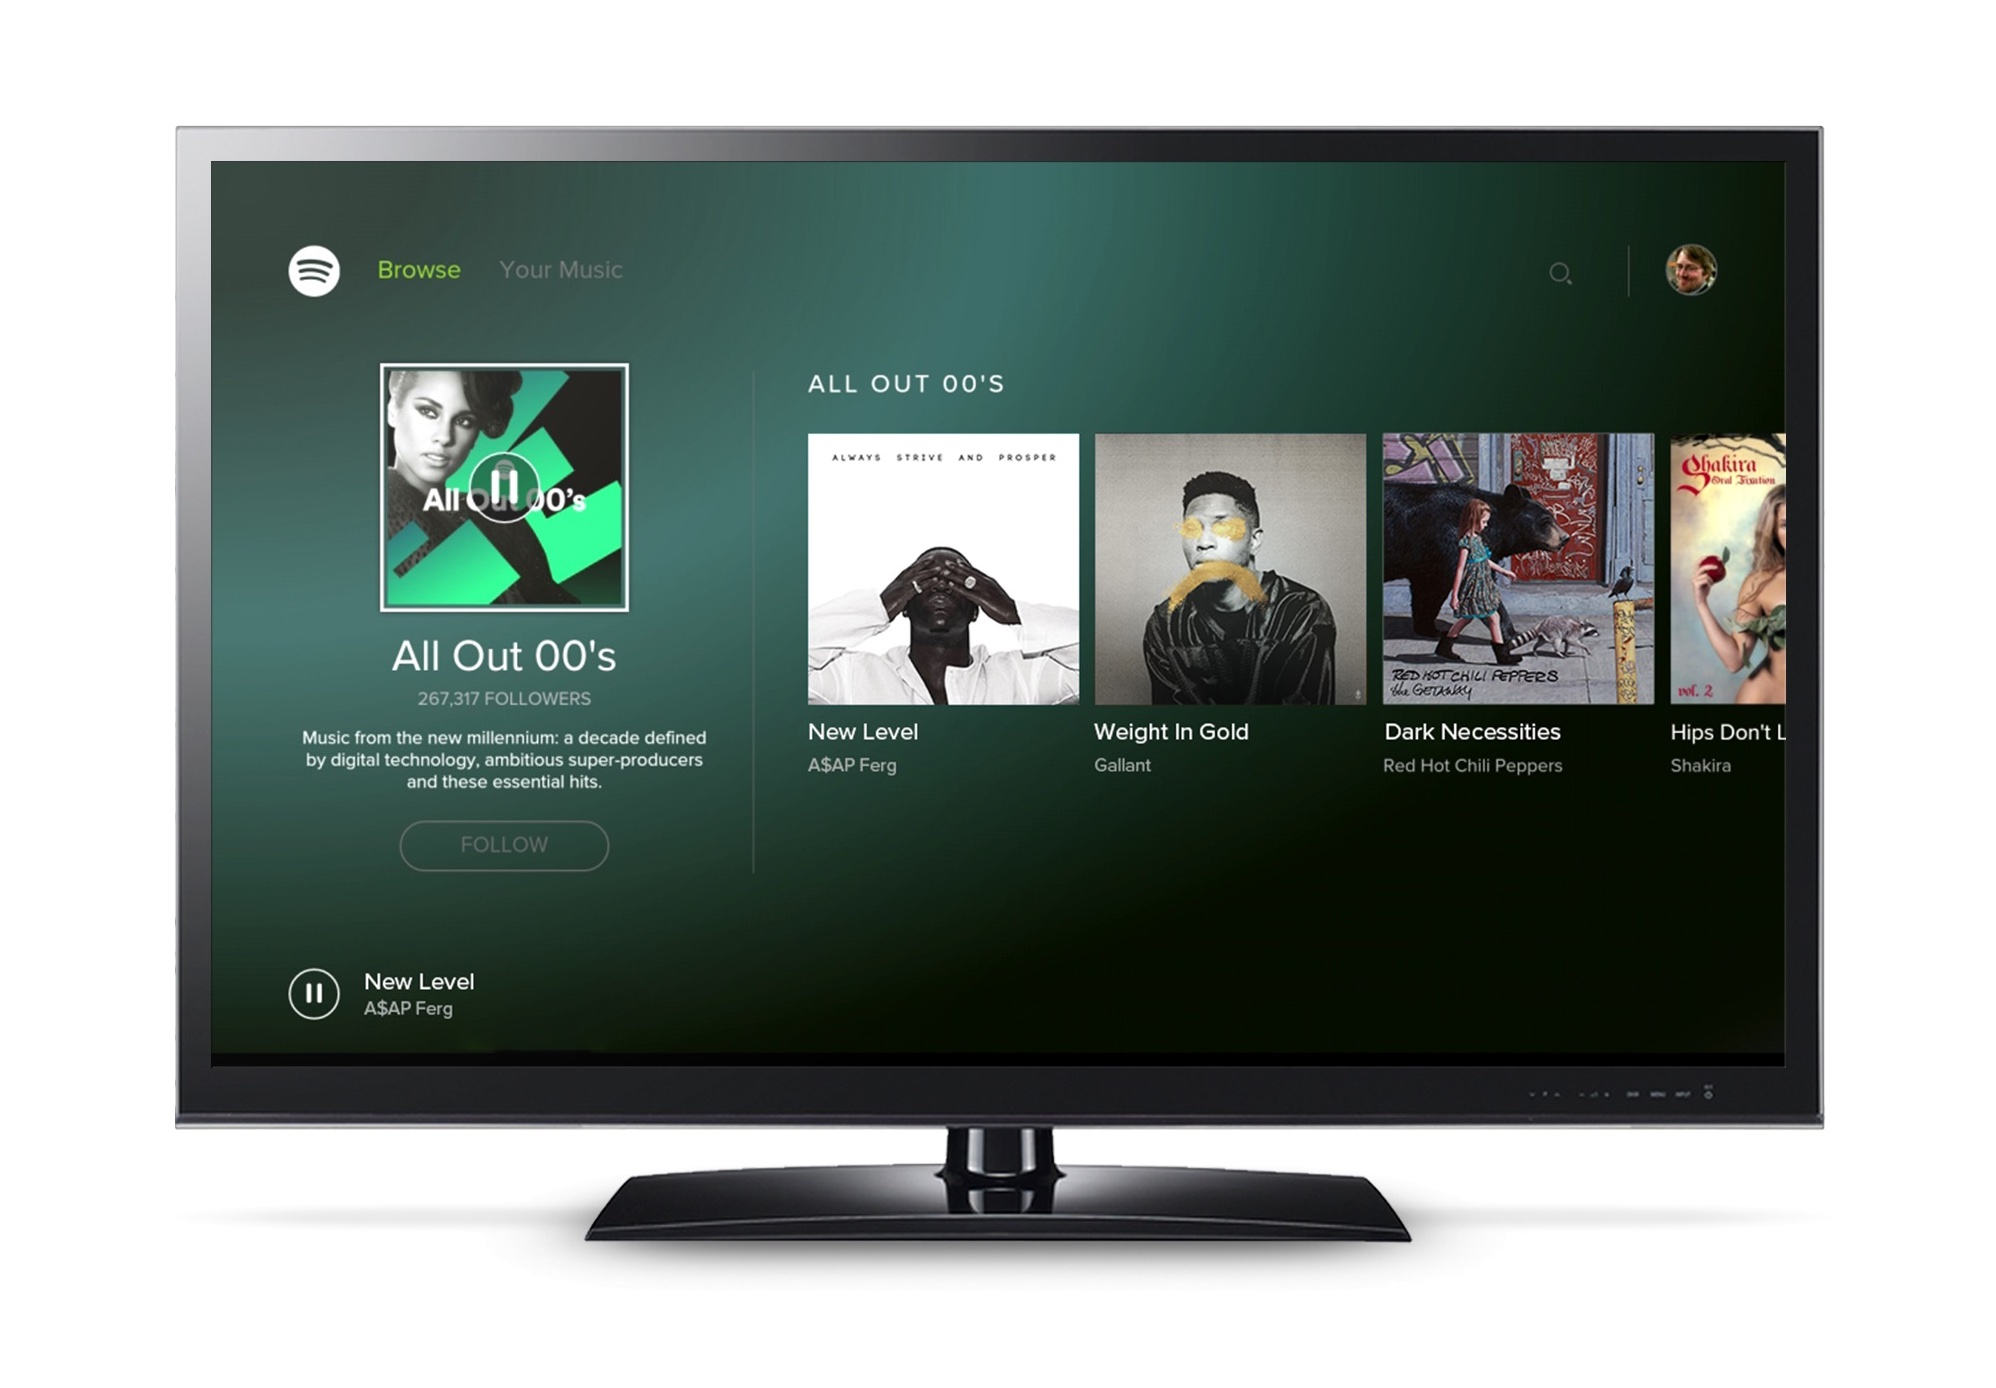 Spotify is now available on Android TV - The Verge